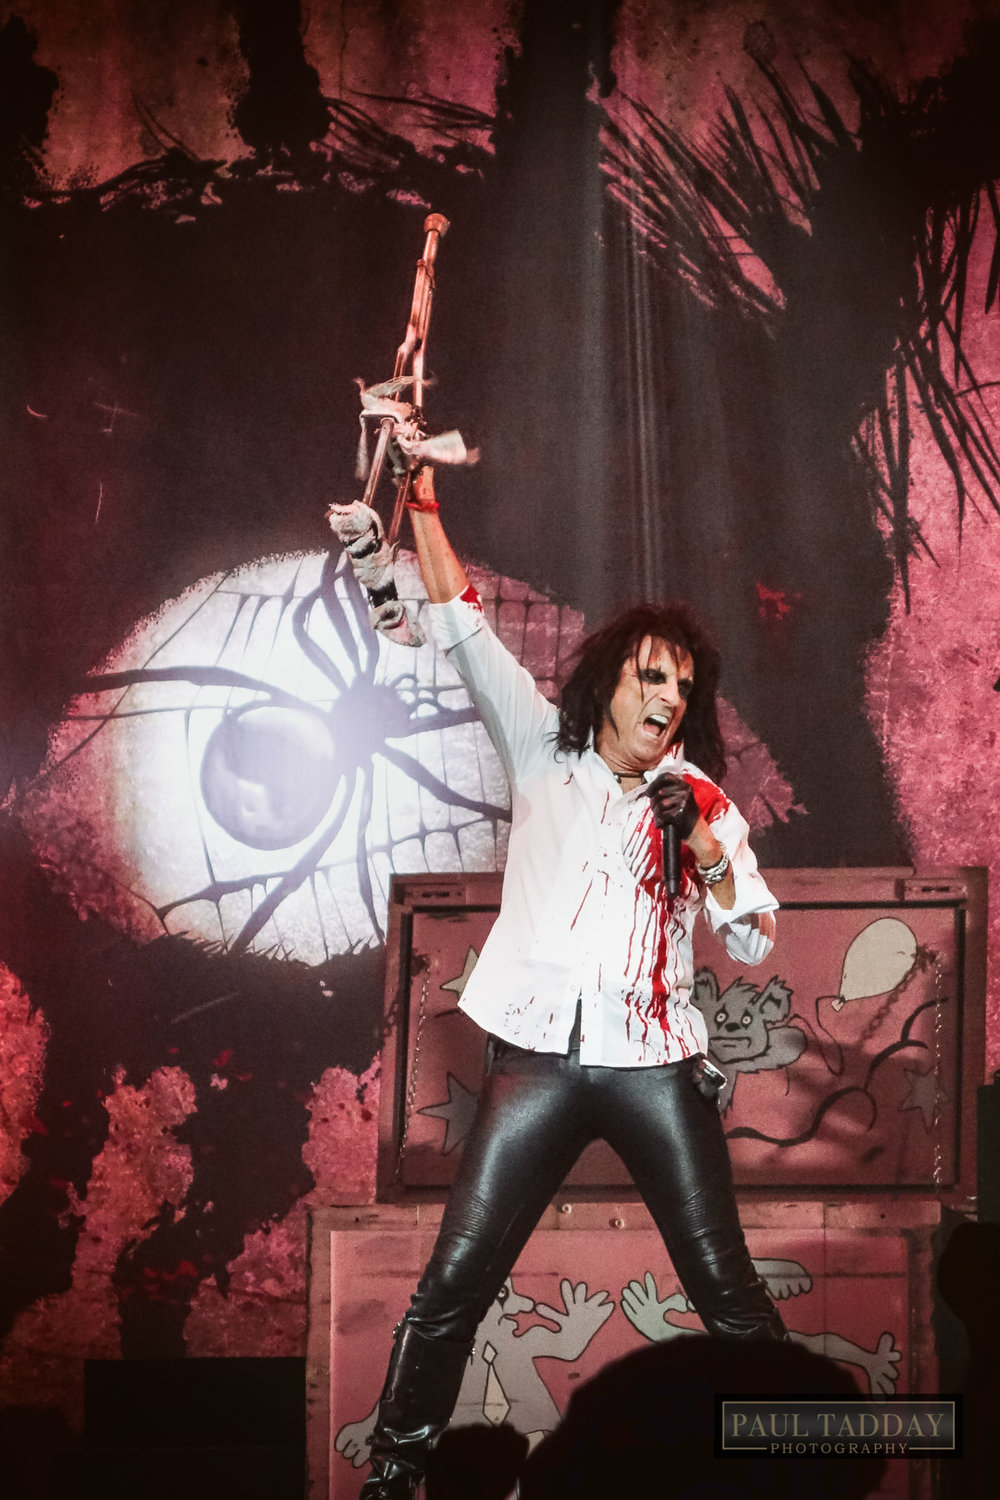 alice cooper - melbourne - paul tadday photography - 201017 - 53.jpg